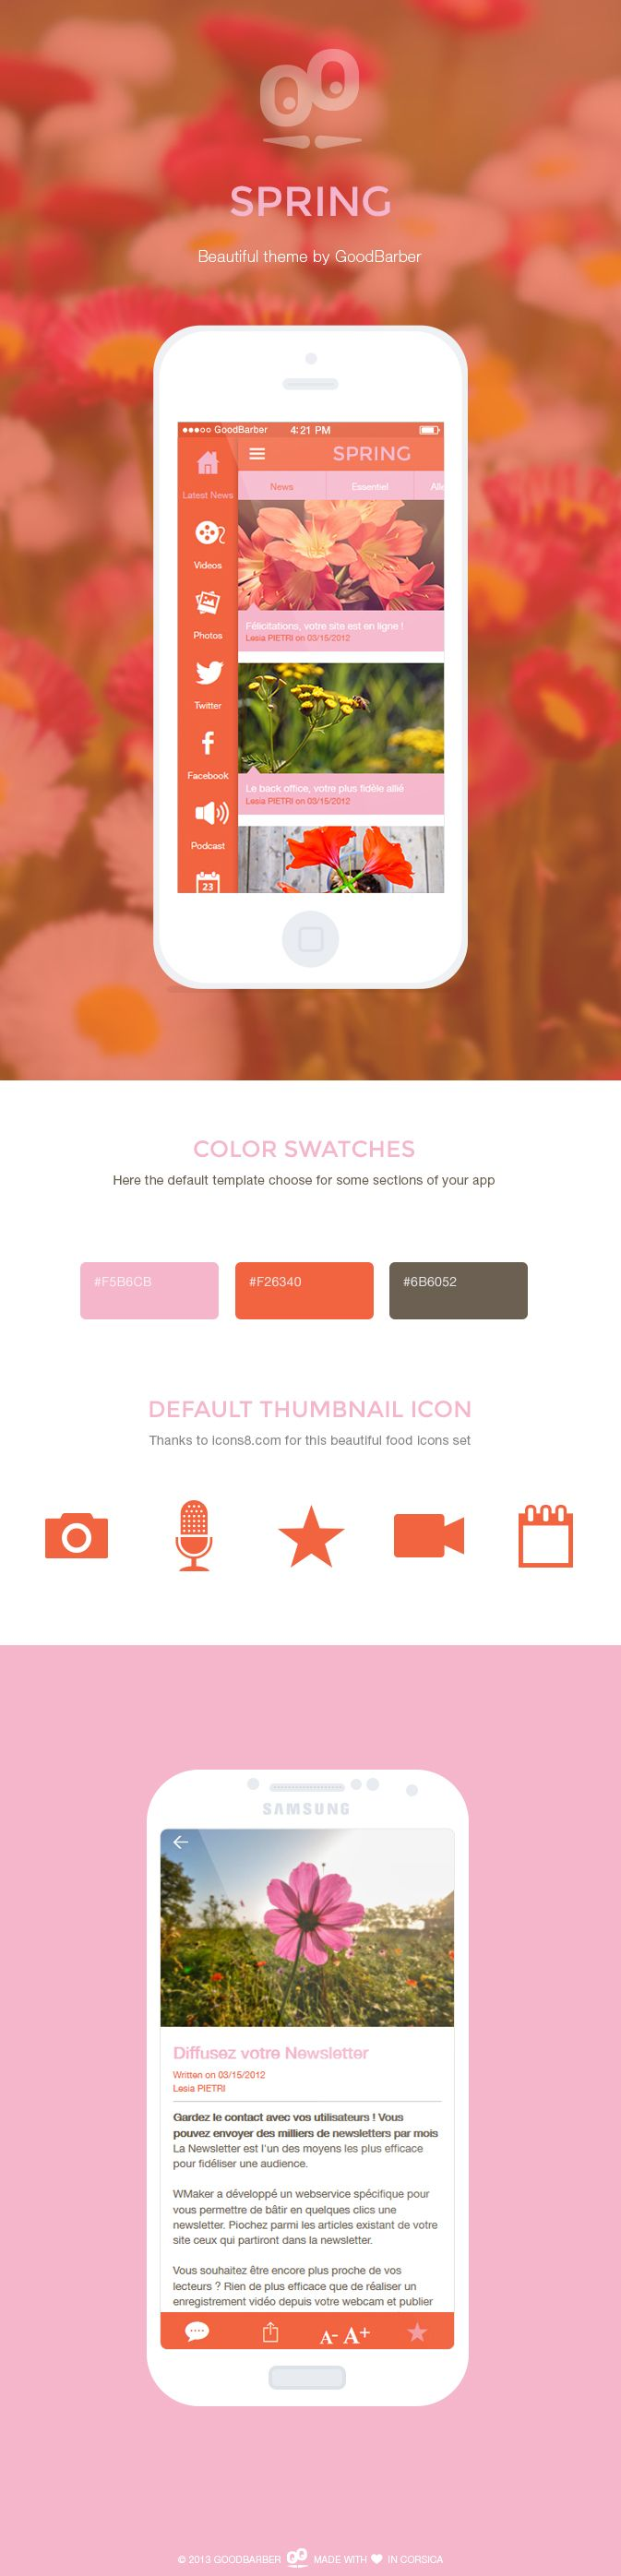 wedding card design software for android%0A Spring app design   design  template  theme